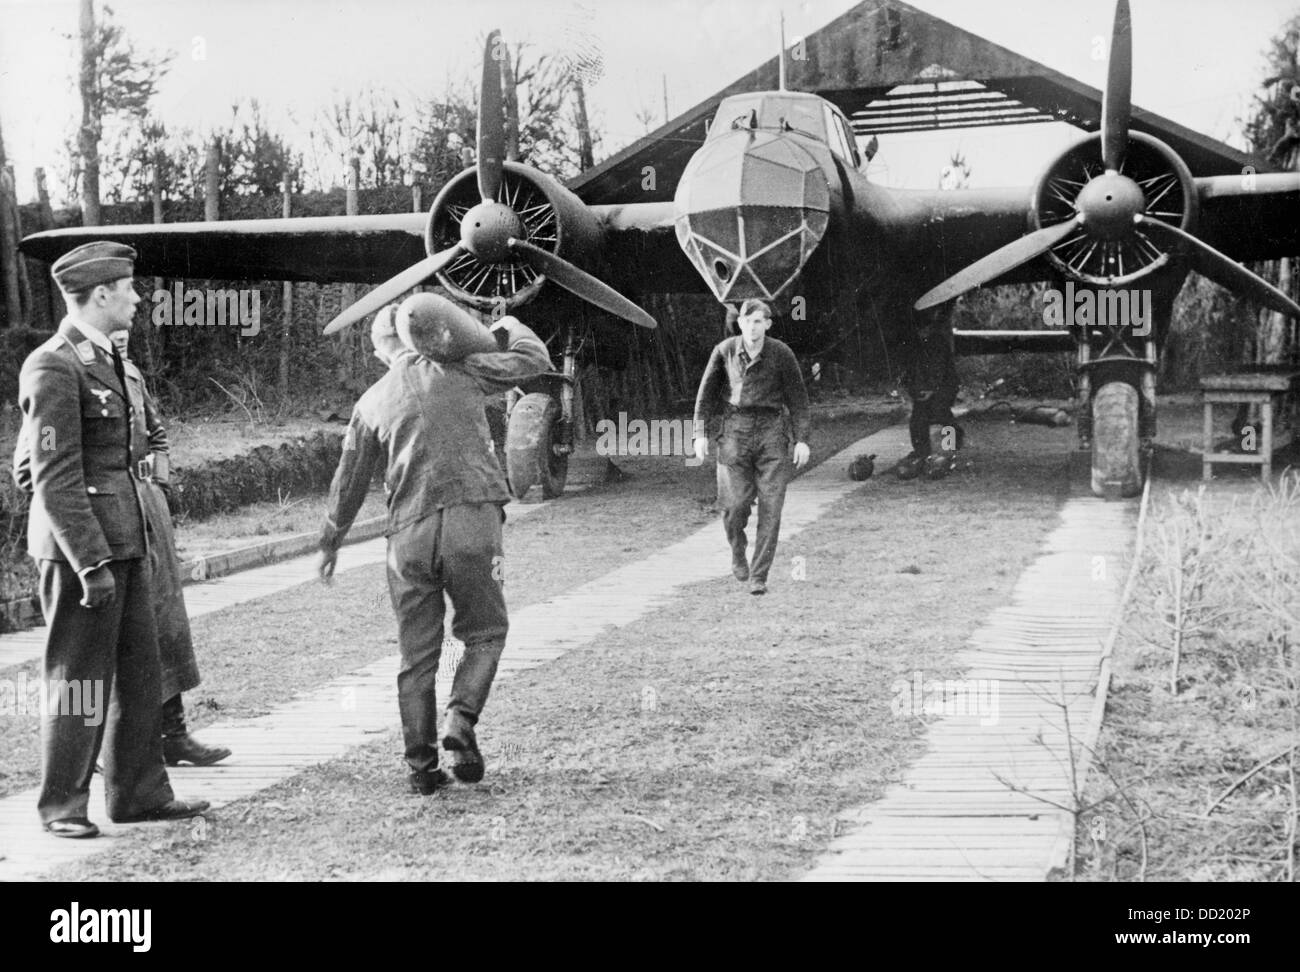 The image from the Nazi Propaganda! shows groundcrew members loading a plane with bombs for the next air raid of Stock Photo